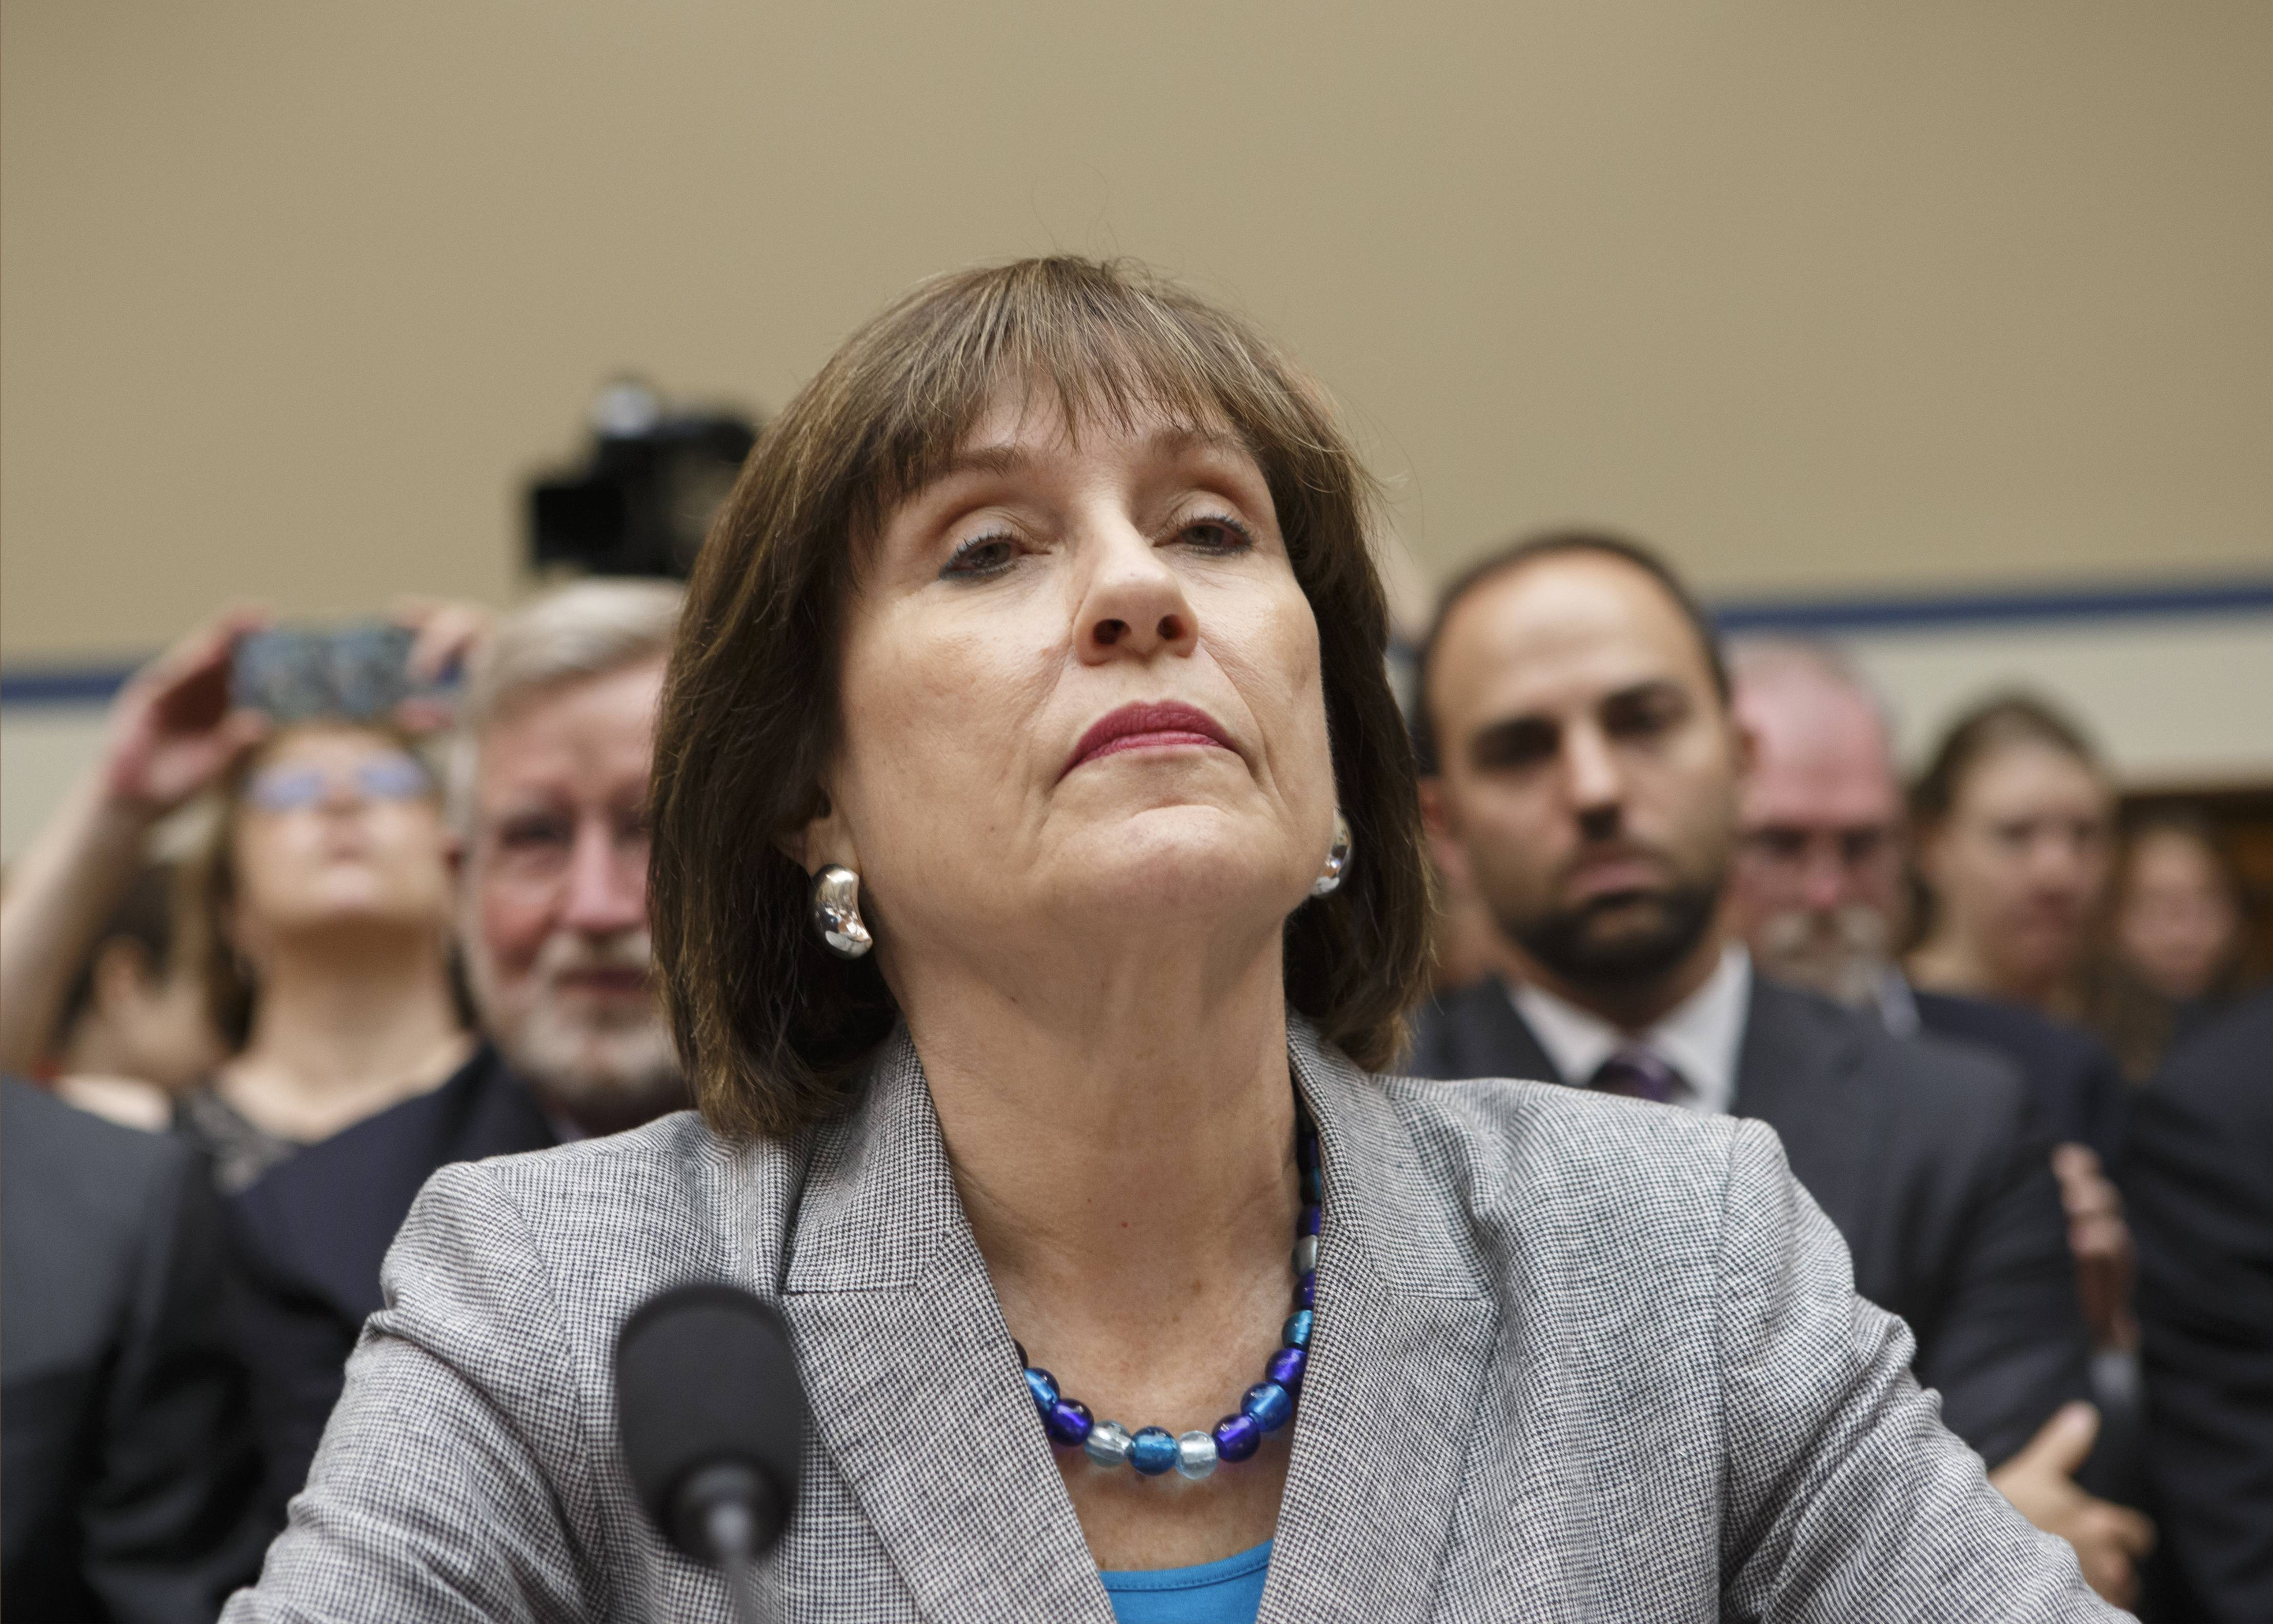 Internal Revenue Service official Lois Lerner on Capitol Hill in Washington. The IRS says it has lost a trove of emails to and from Lerner's emails prior to 2011 because her computer crashed that year.